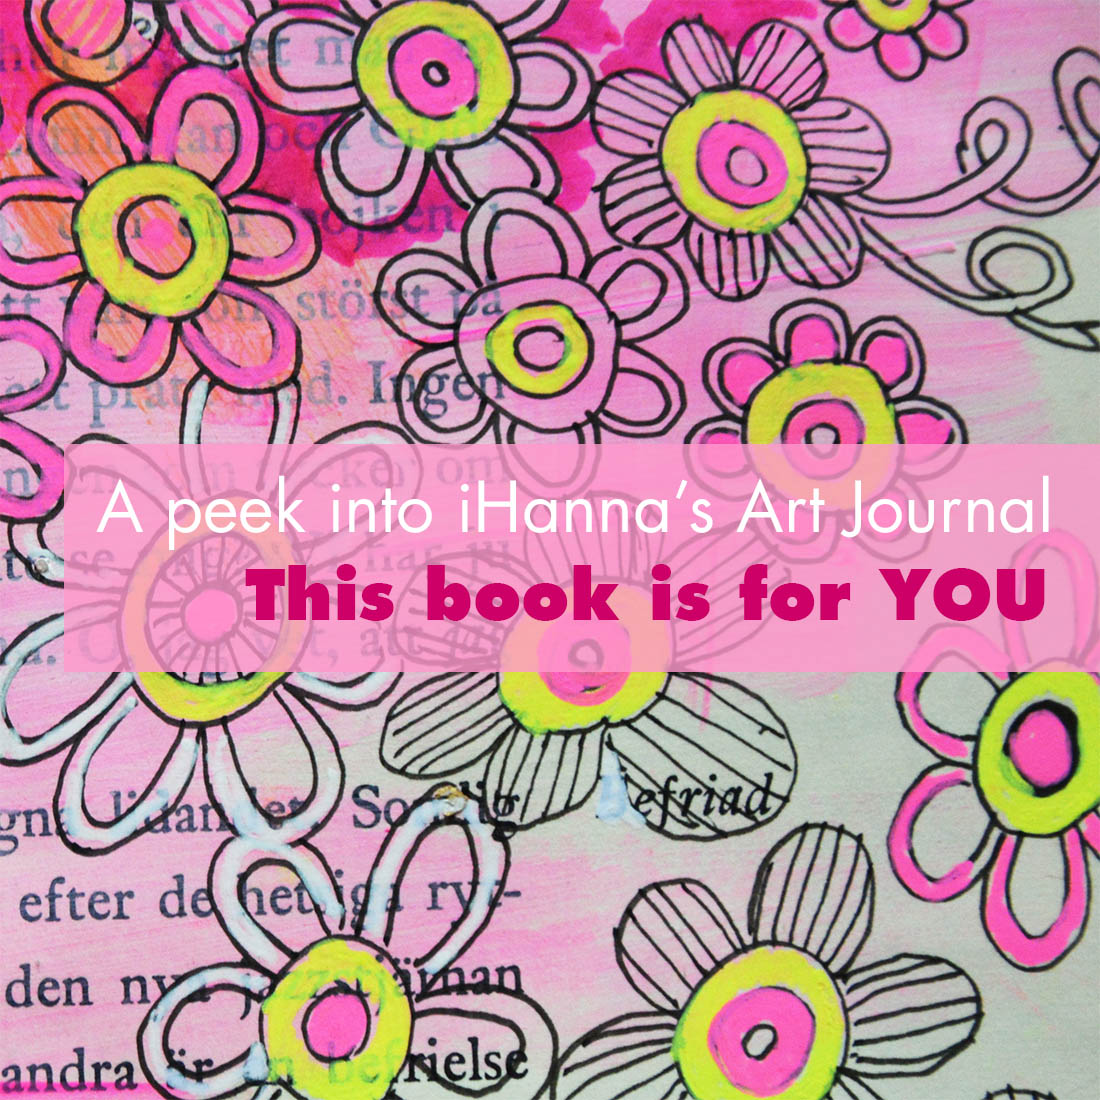 Art Journal Peek: This book is for you Hanna